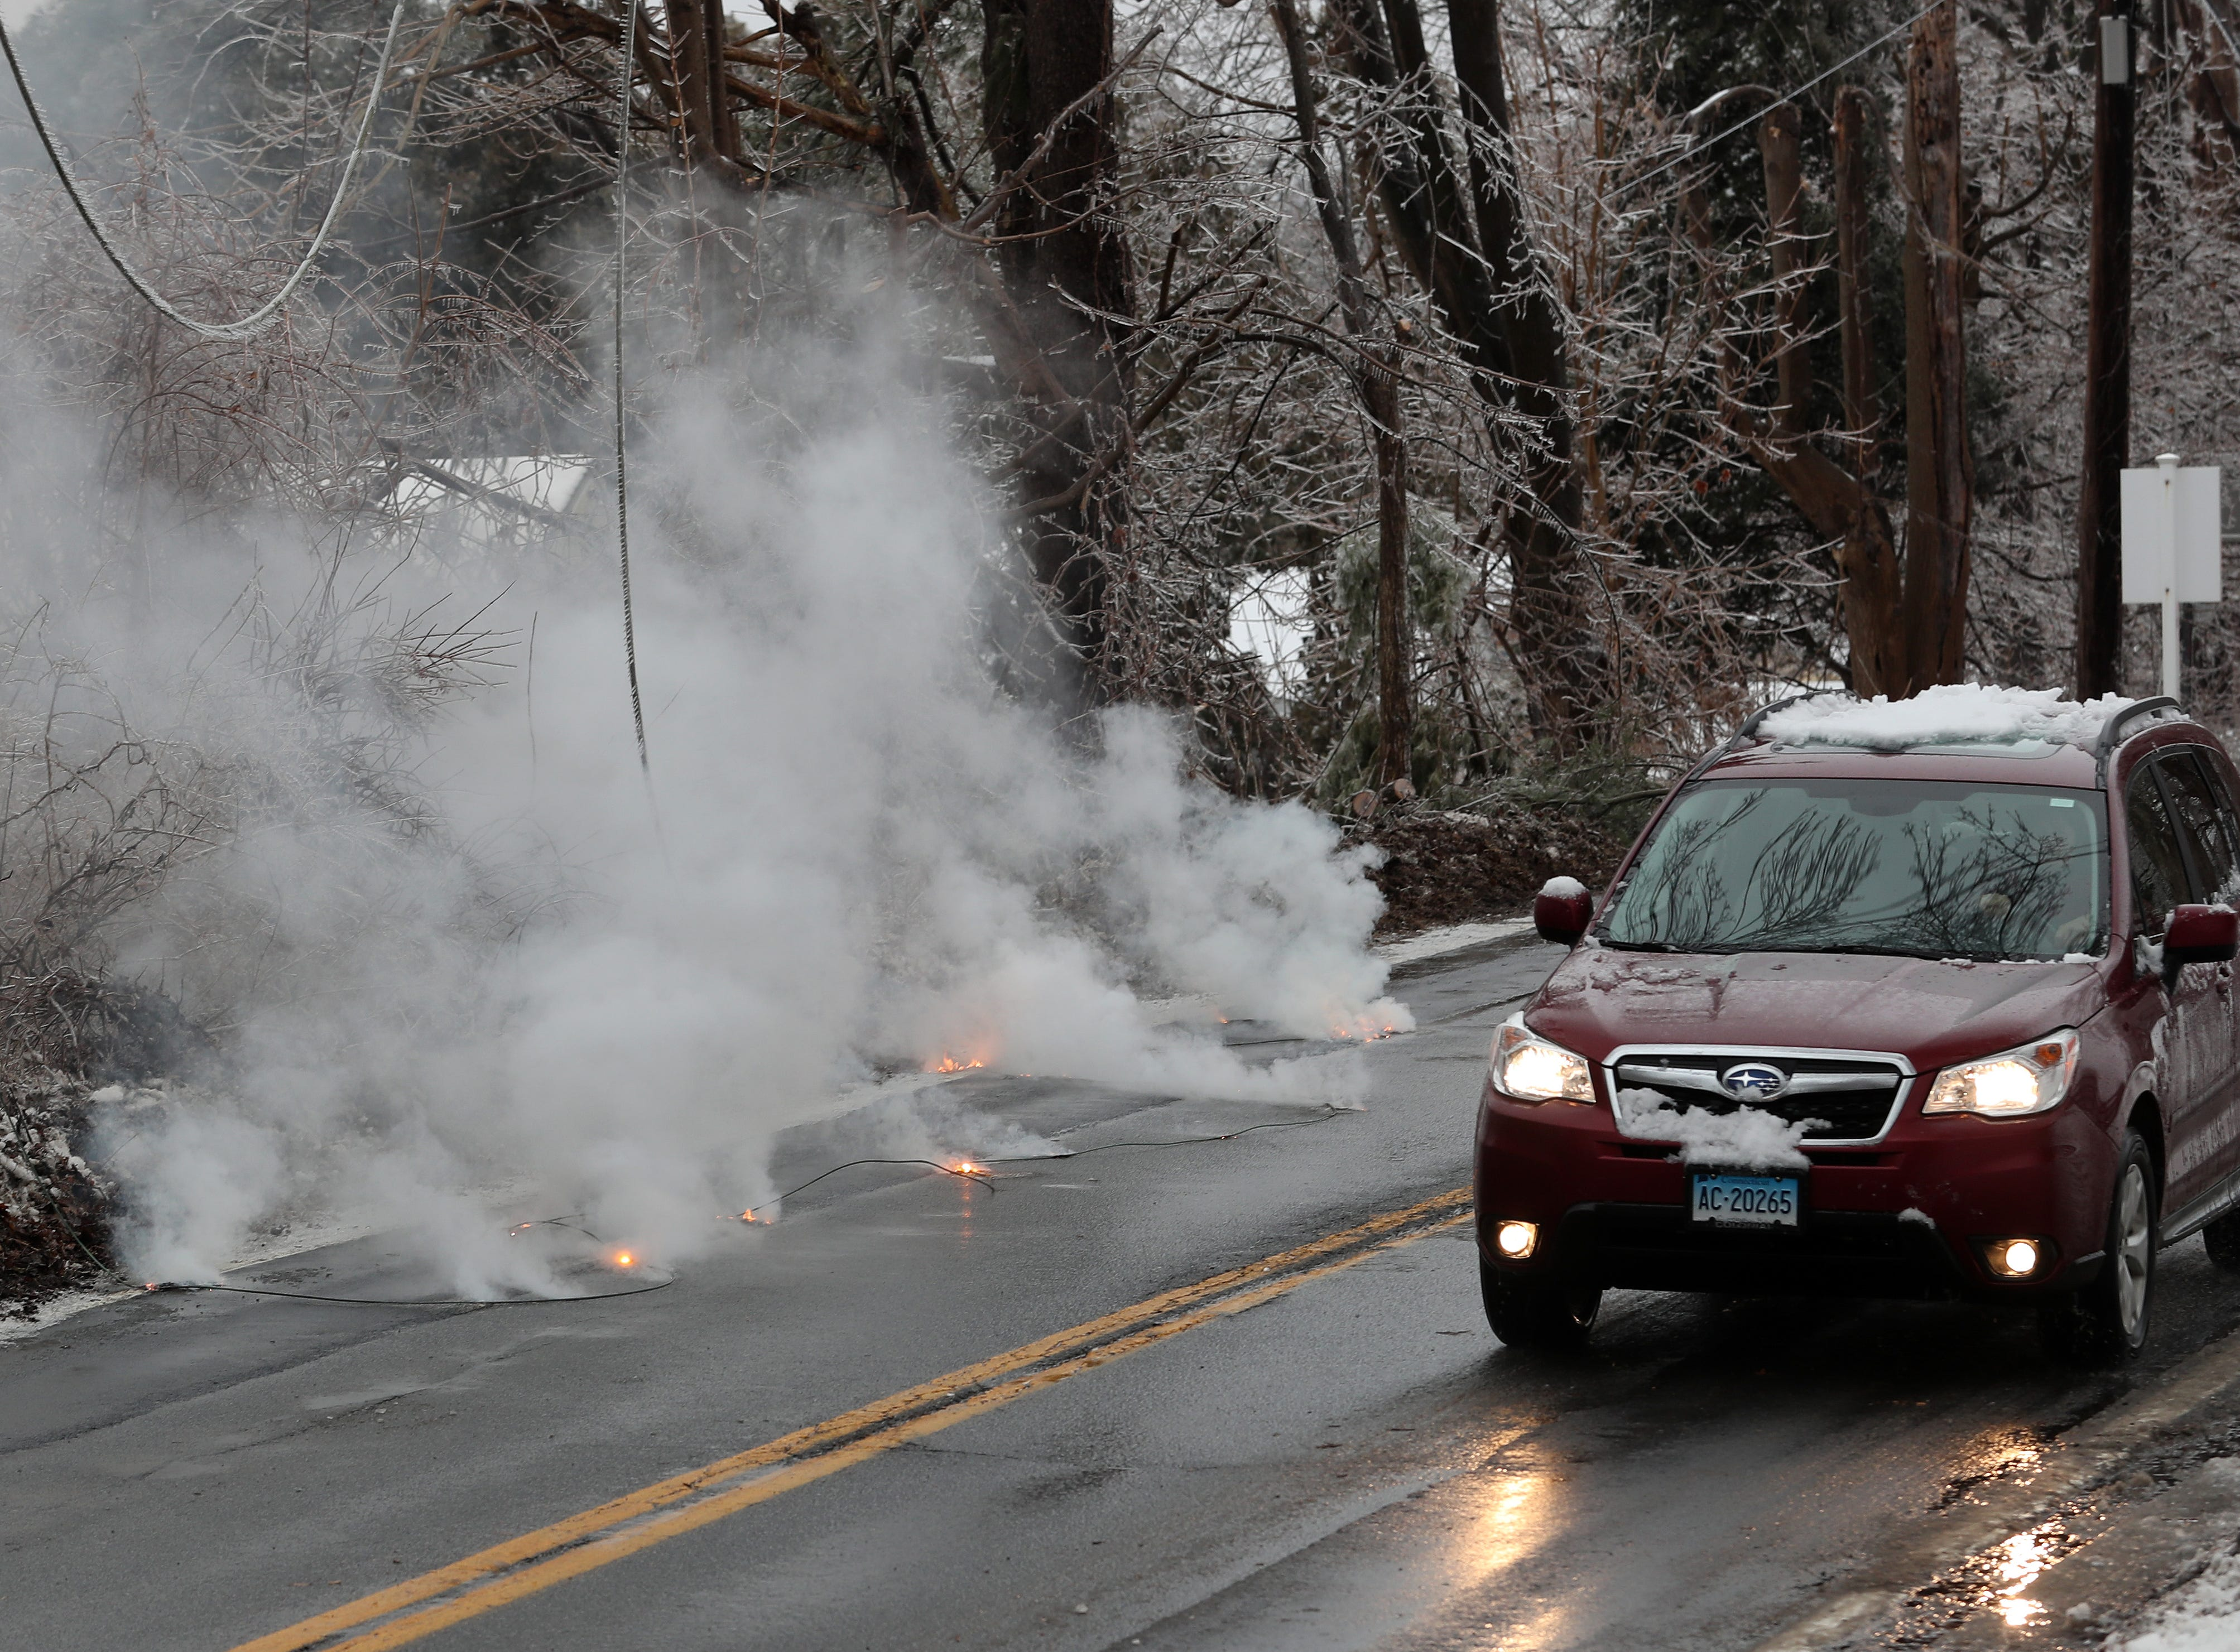 A car drives by burning power lines on the side of Route 121 in North Salem Jan. 20, 2019. A large tree branch came down taking the power lines with it.